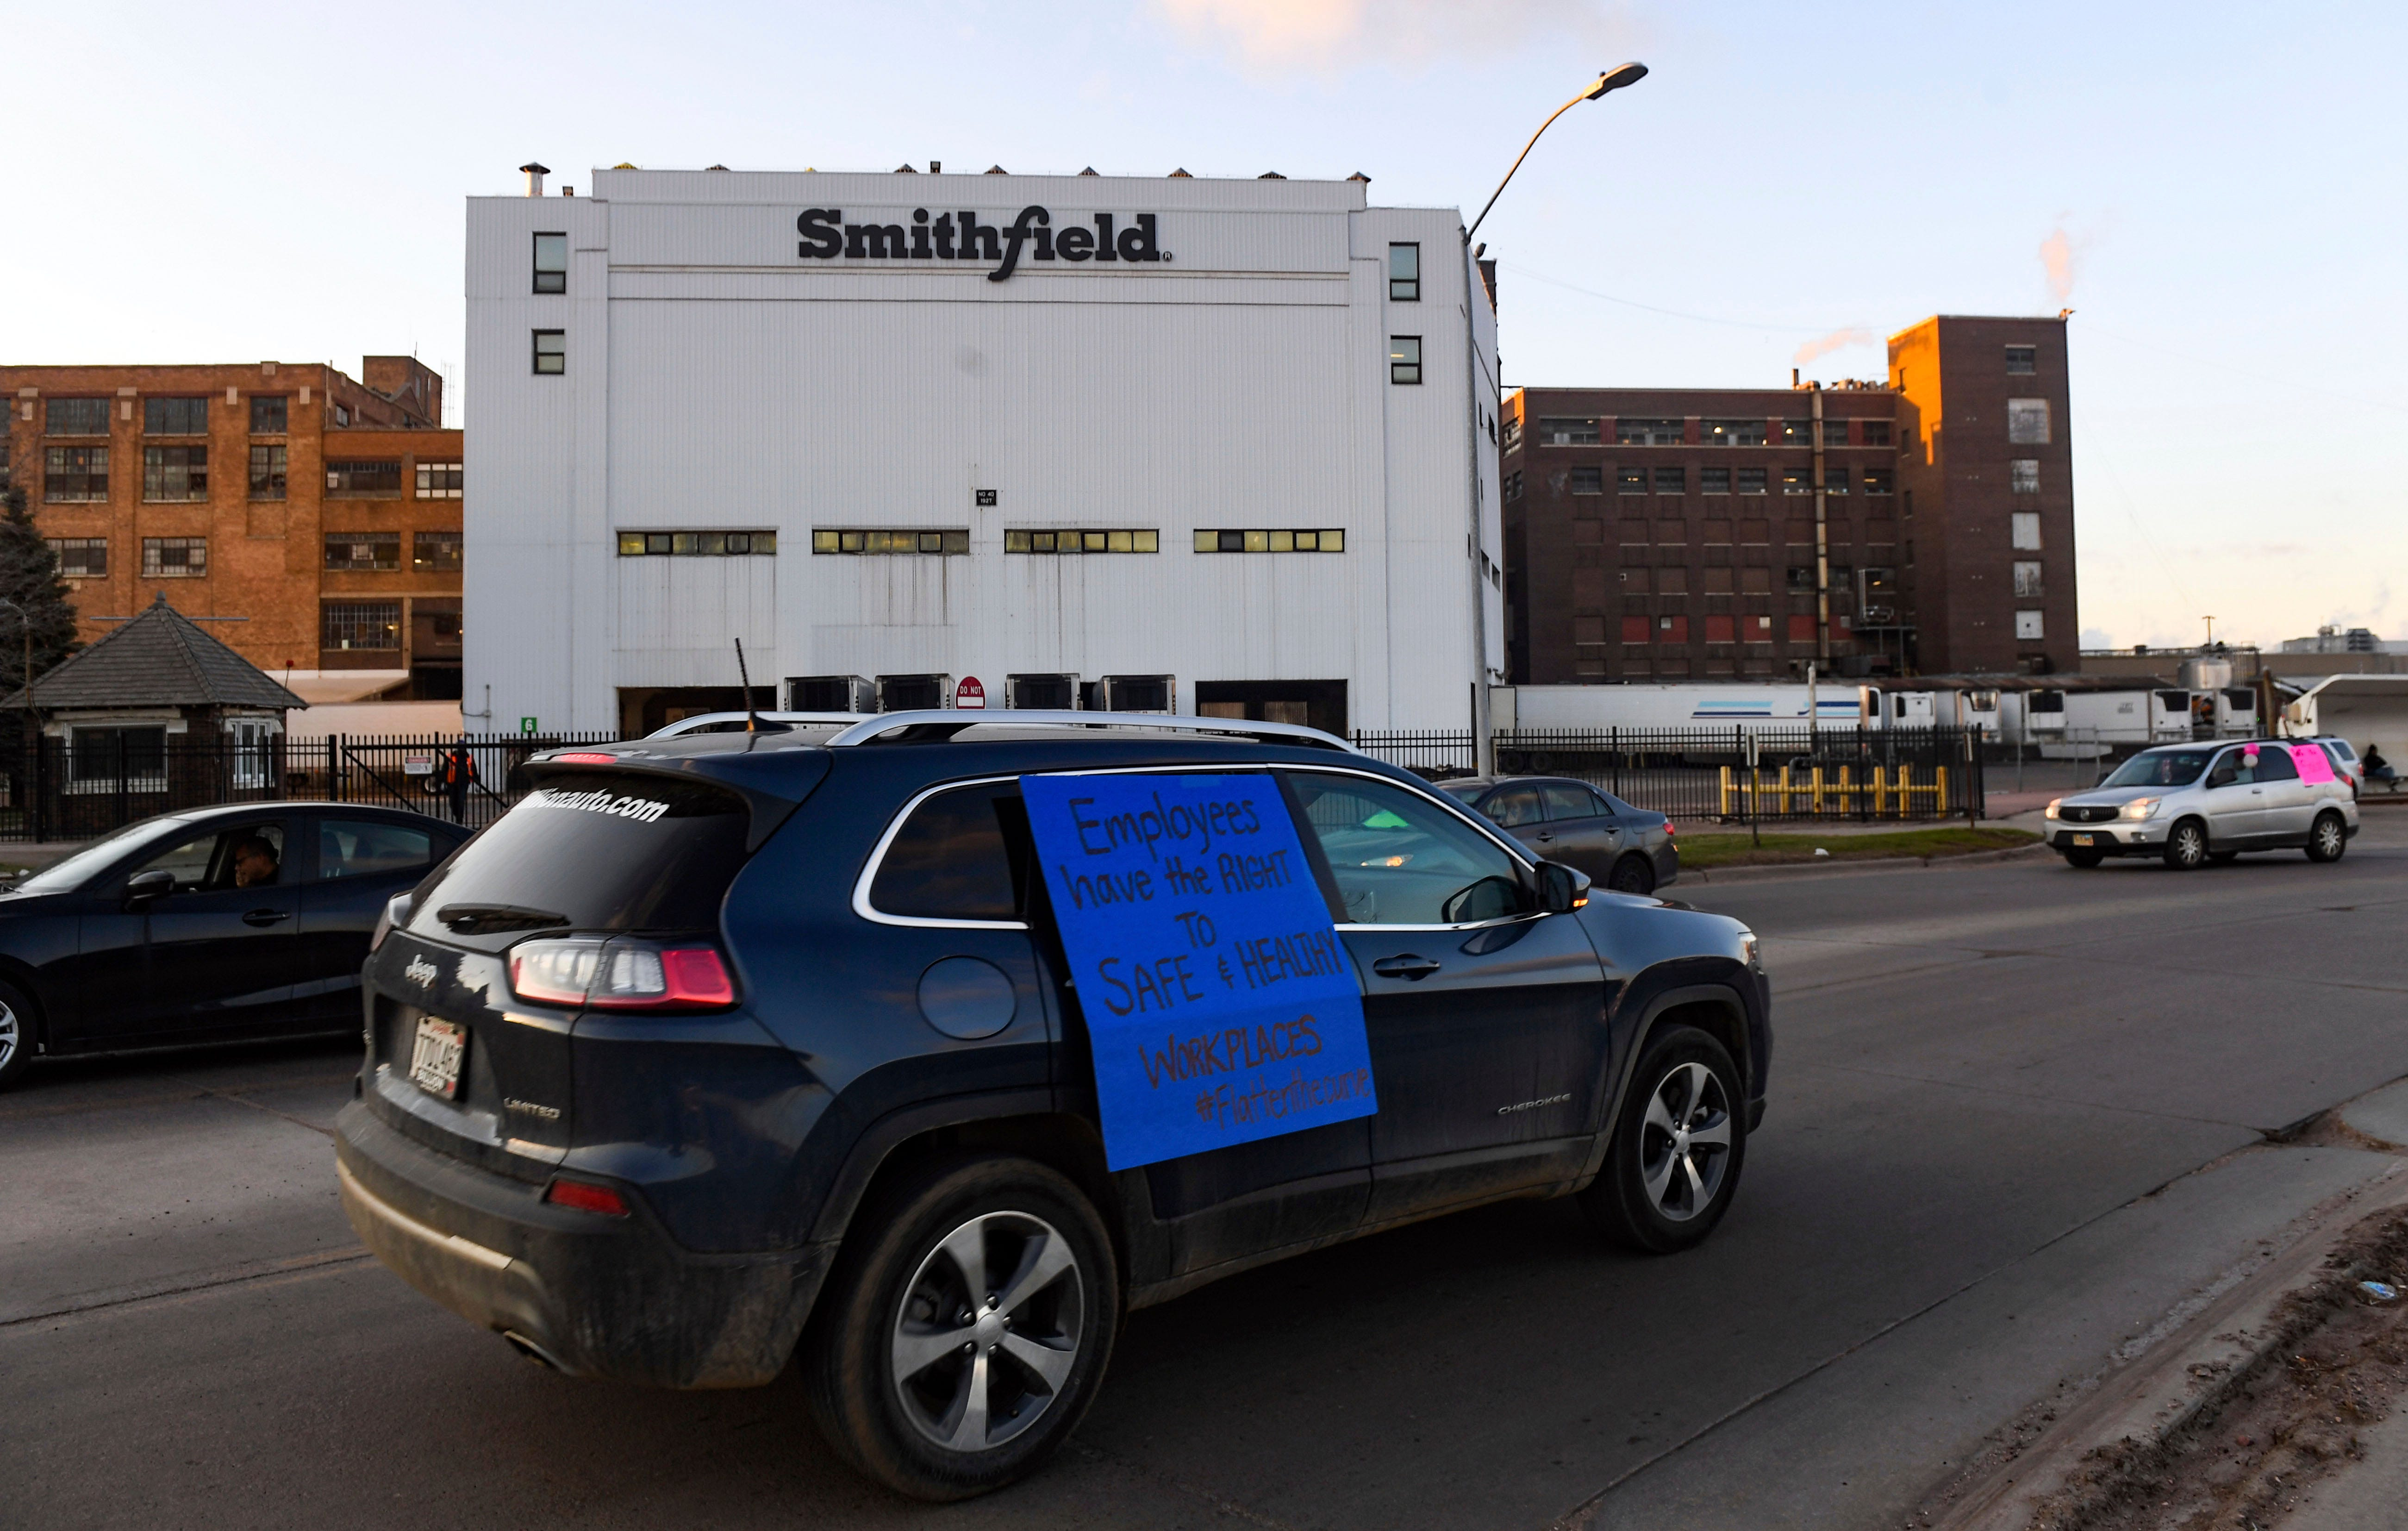 A car sports a sign calling for a safe and healthy workplace outside of Smithfield Foods, Inc. in Sioux Falls on April 9. The plant reopened this week after being closed during a coronavirus outbreak among workers.